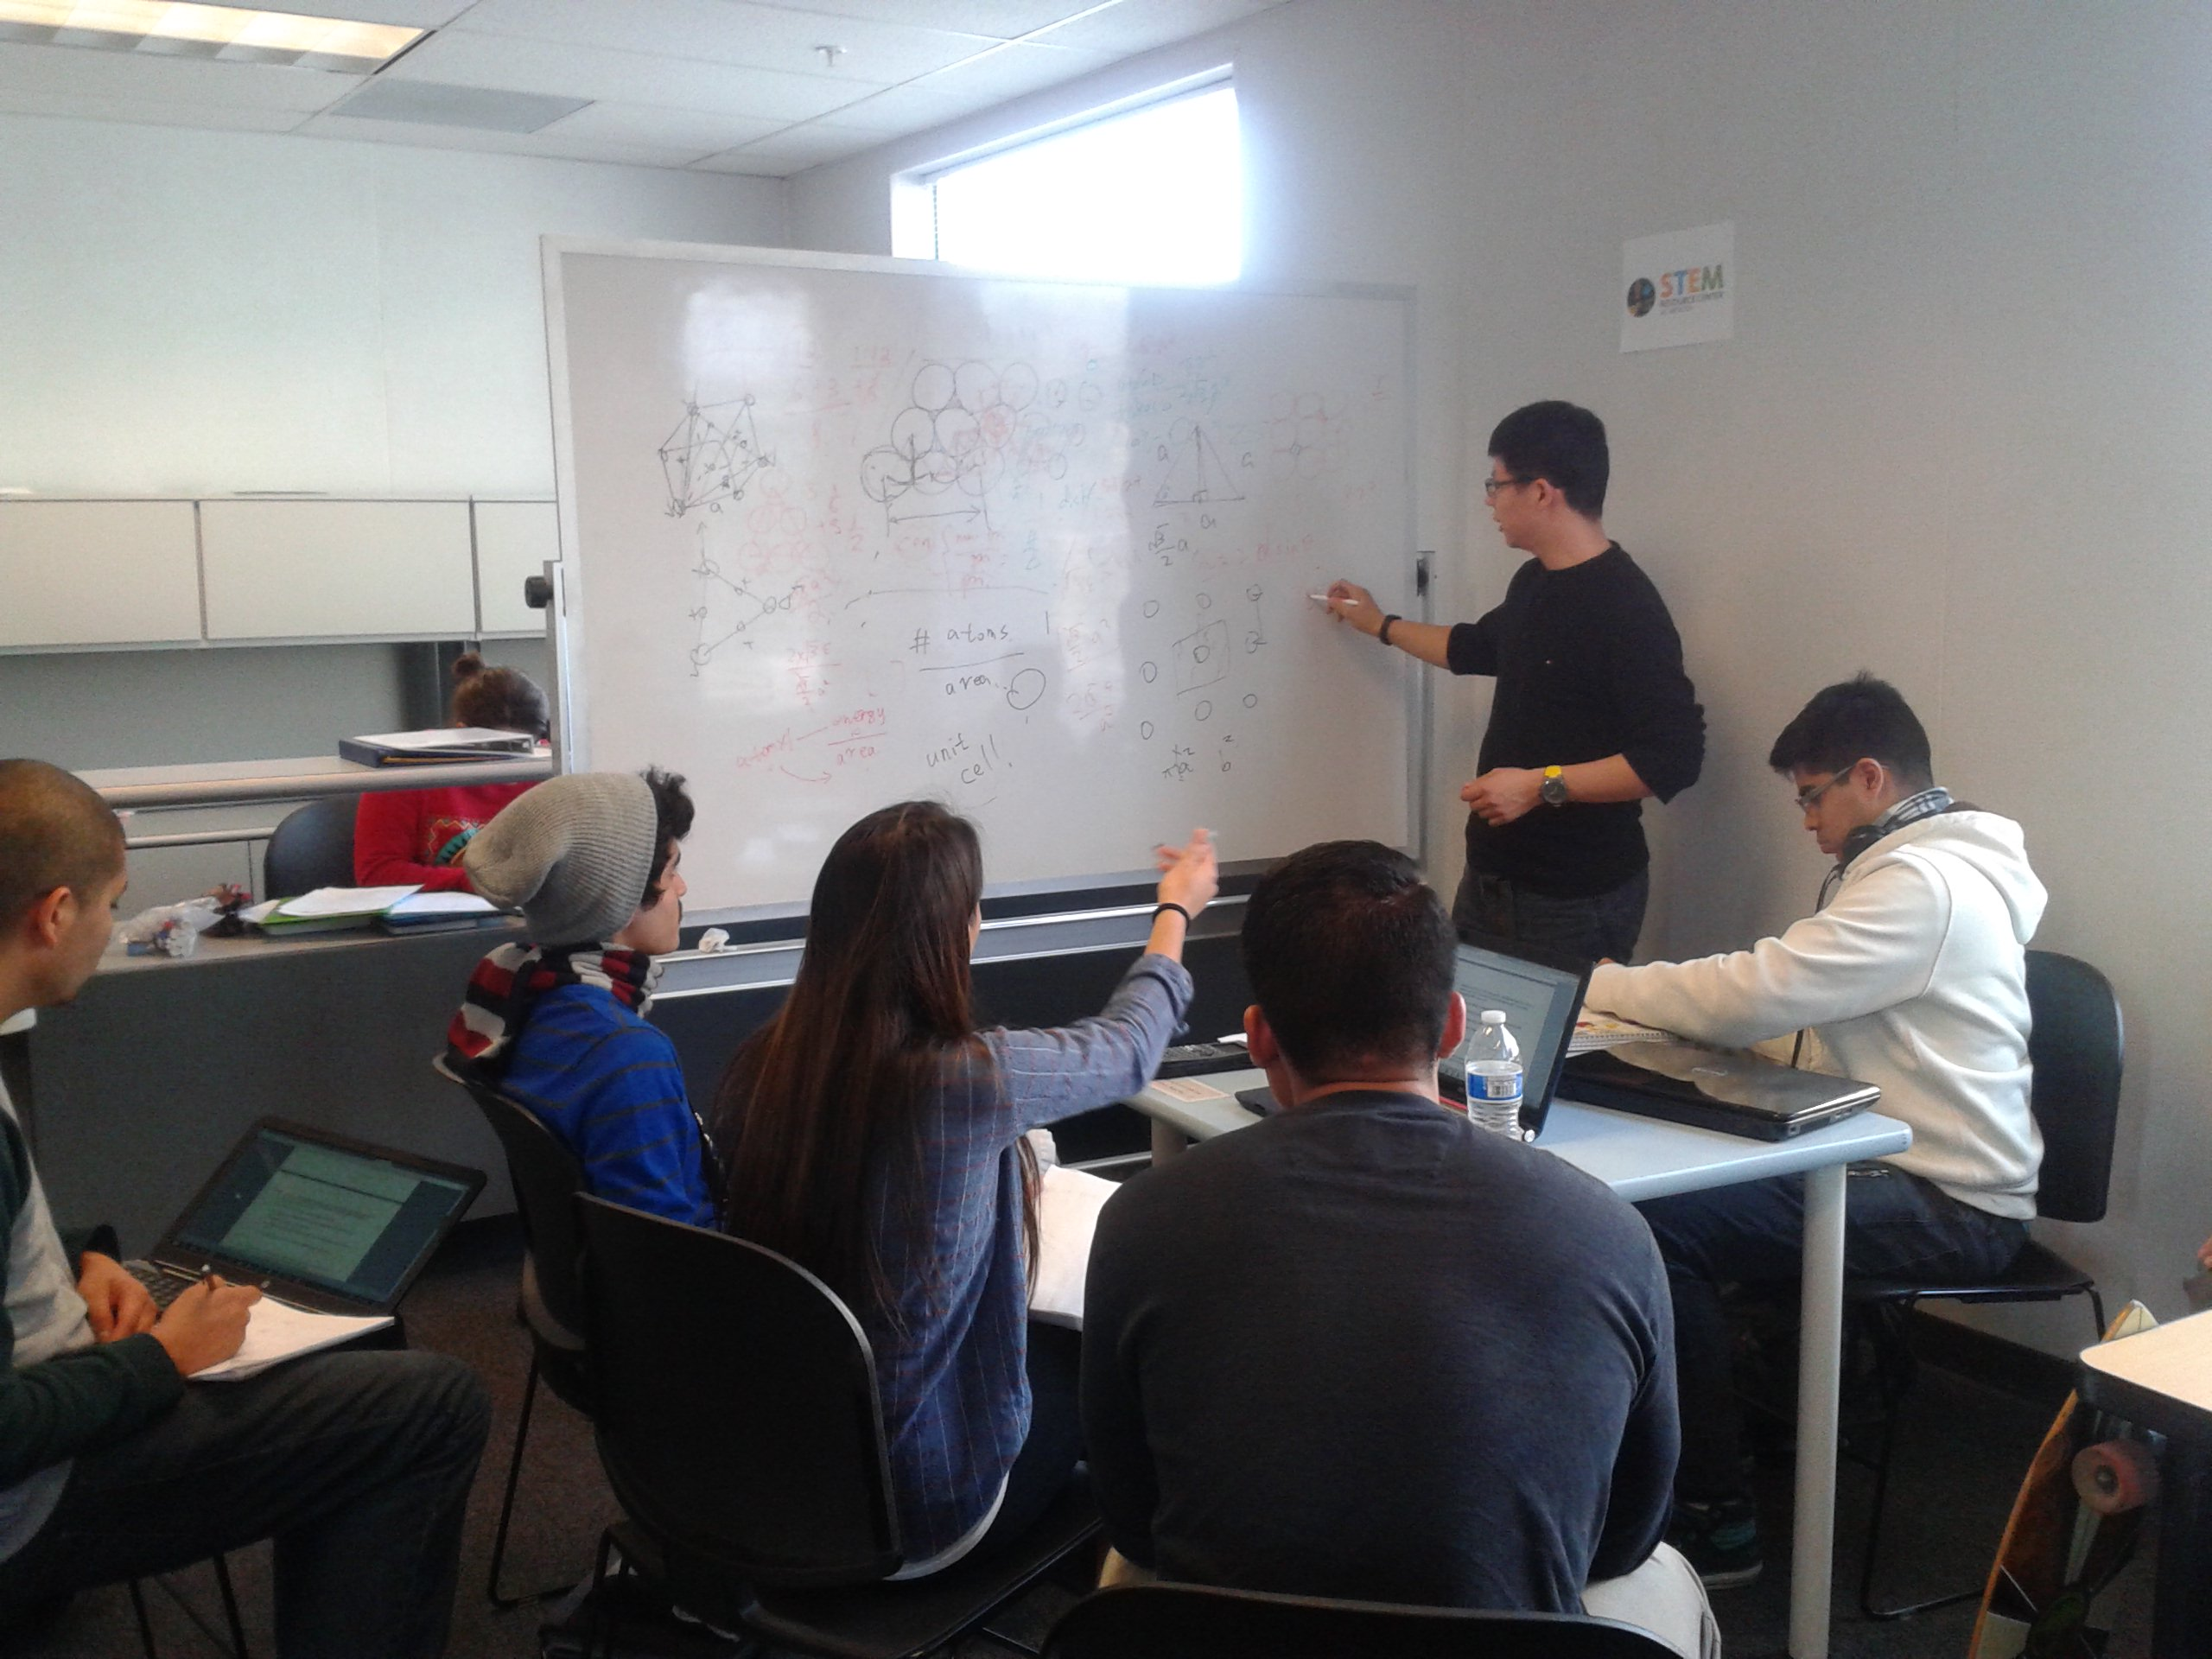 Students in class with professor writing on whiteboard